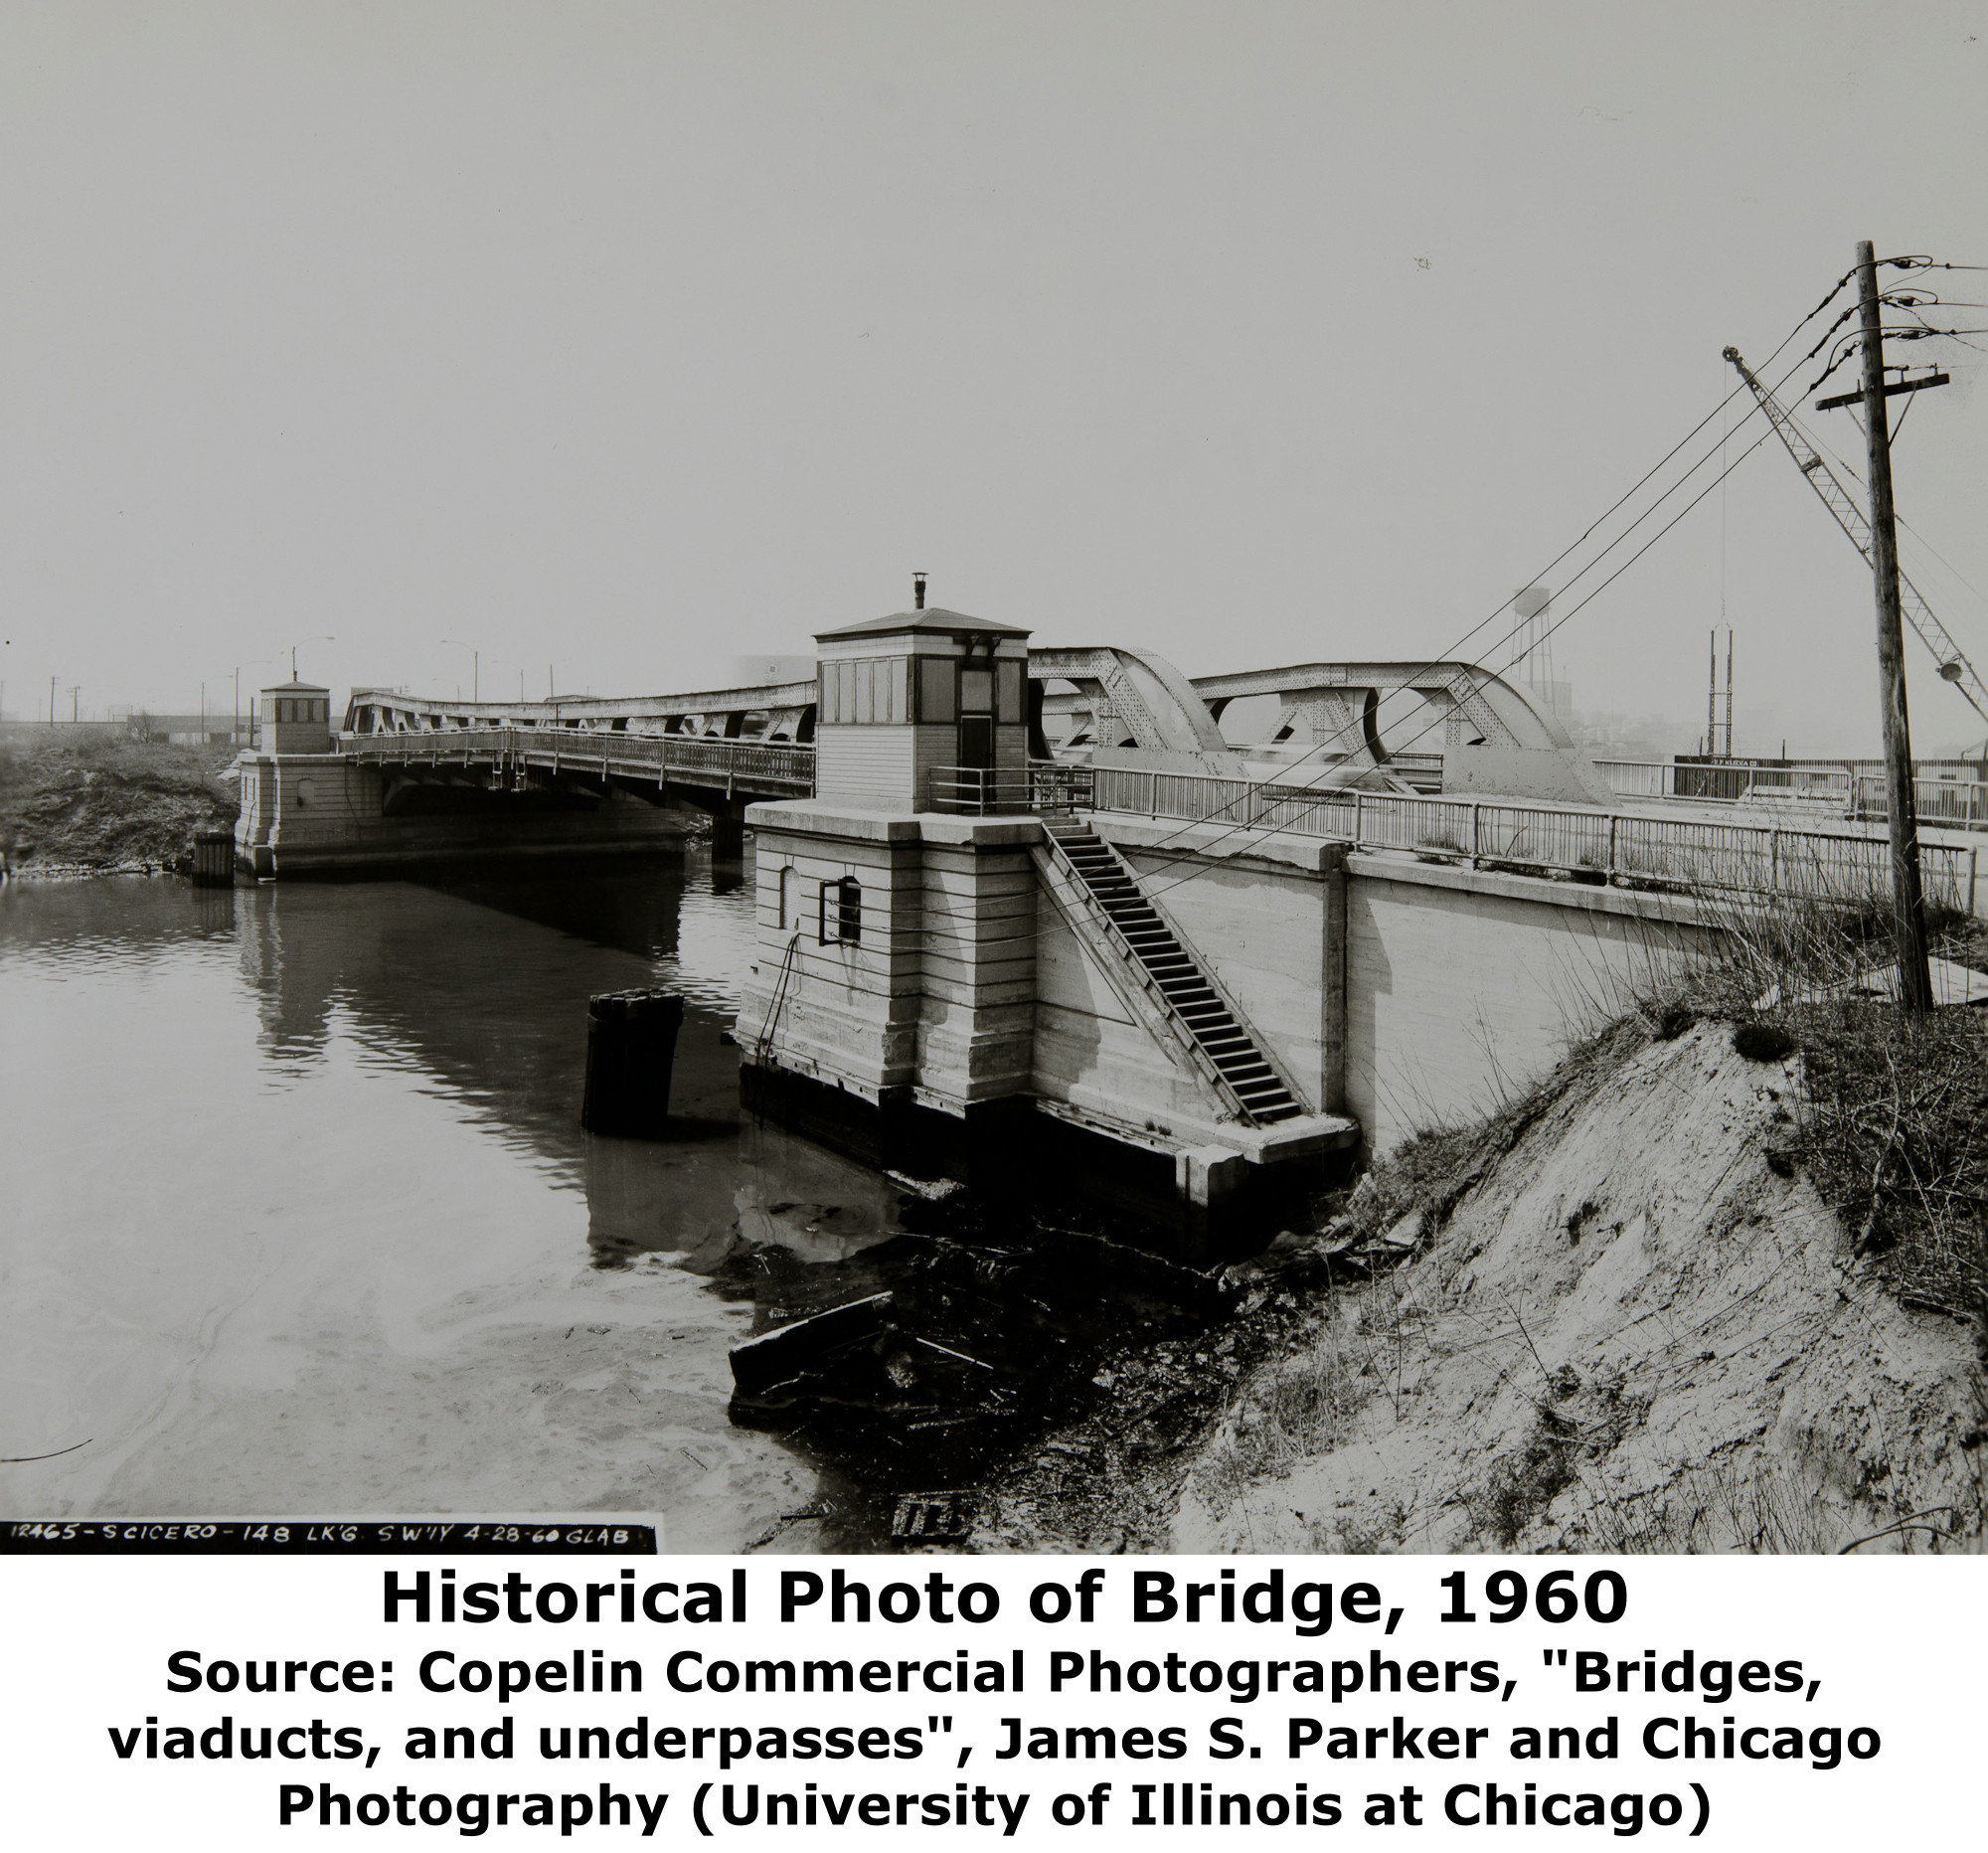 Illinois cook county cicero - Above This Photo Shows The Bridge In 1960 Only A Few Years Before It Was Widened